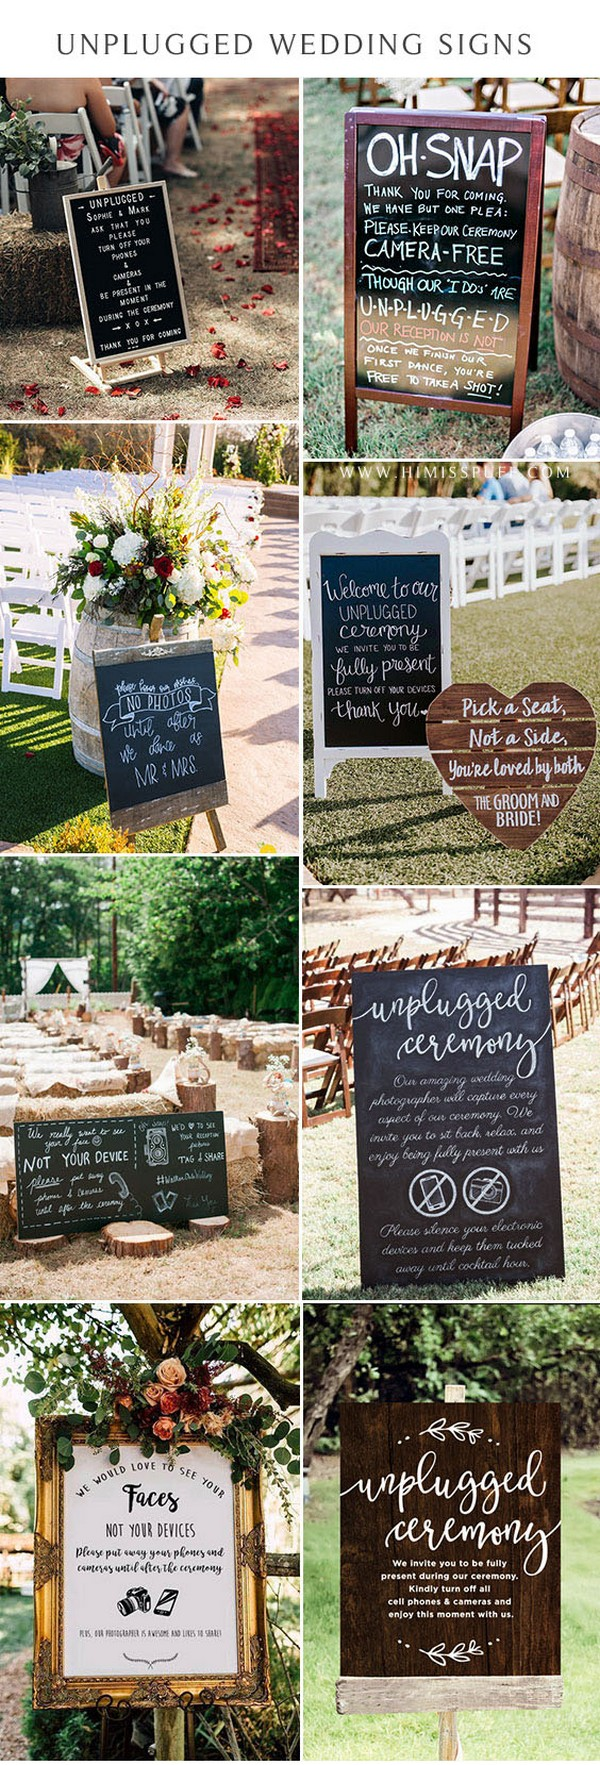 unplugged ceremony chalkboard sign Unplugged Ceremony Sign Unplugged Wedding Sign